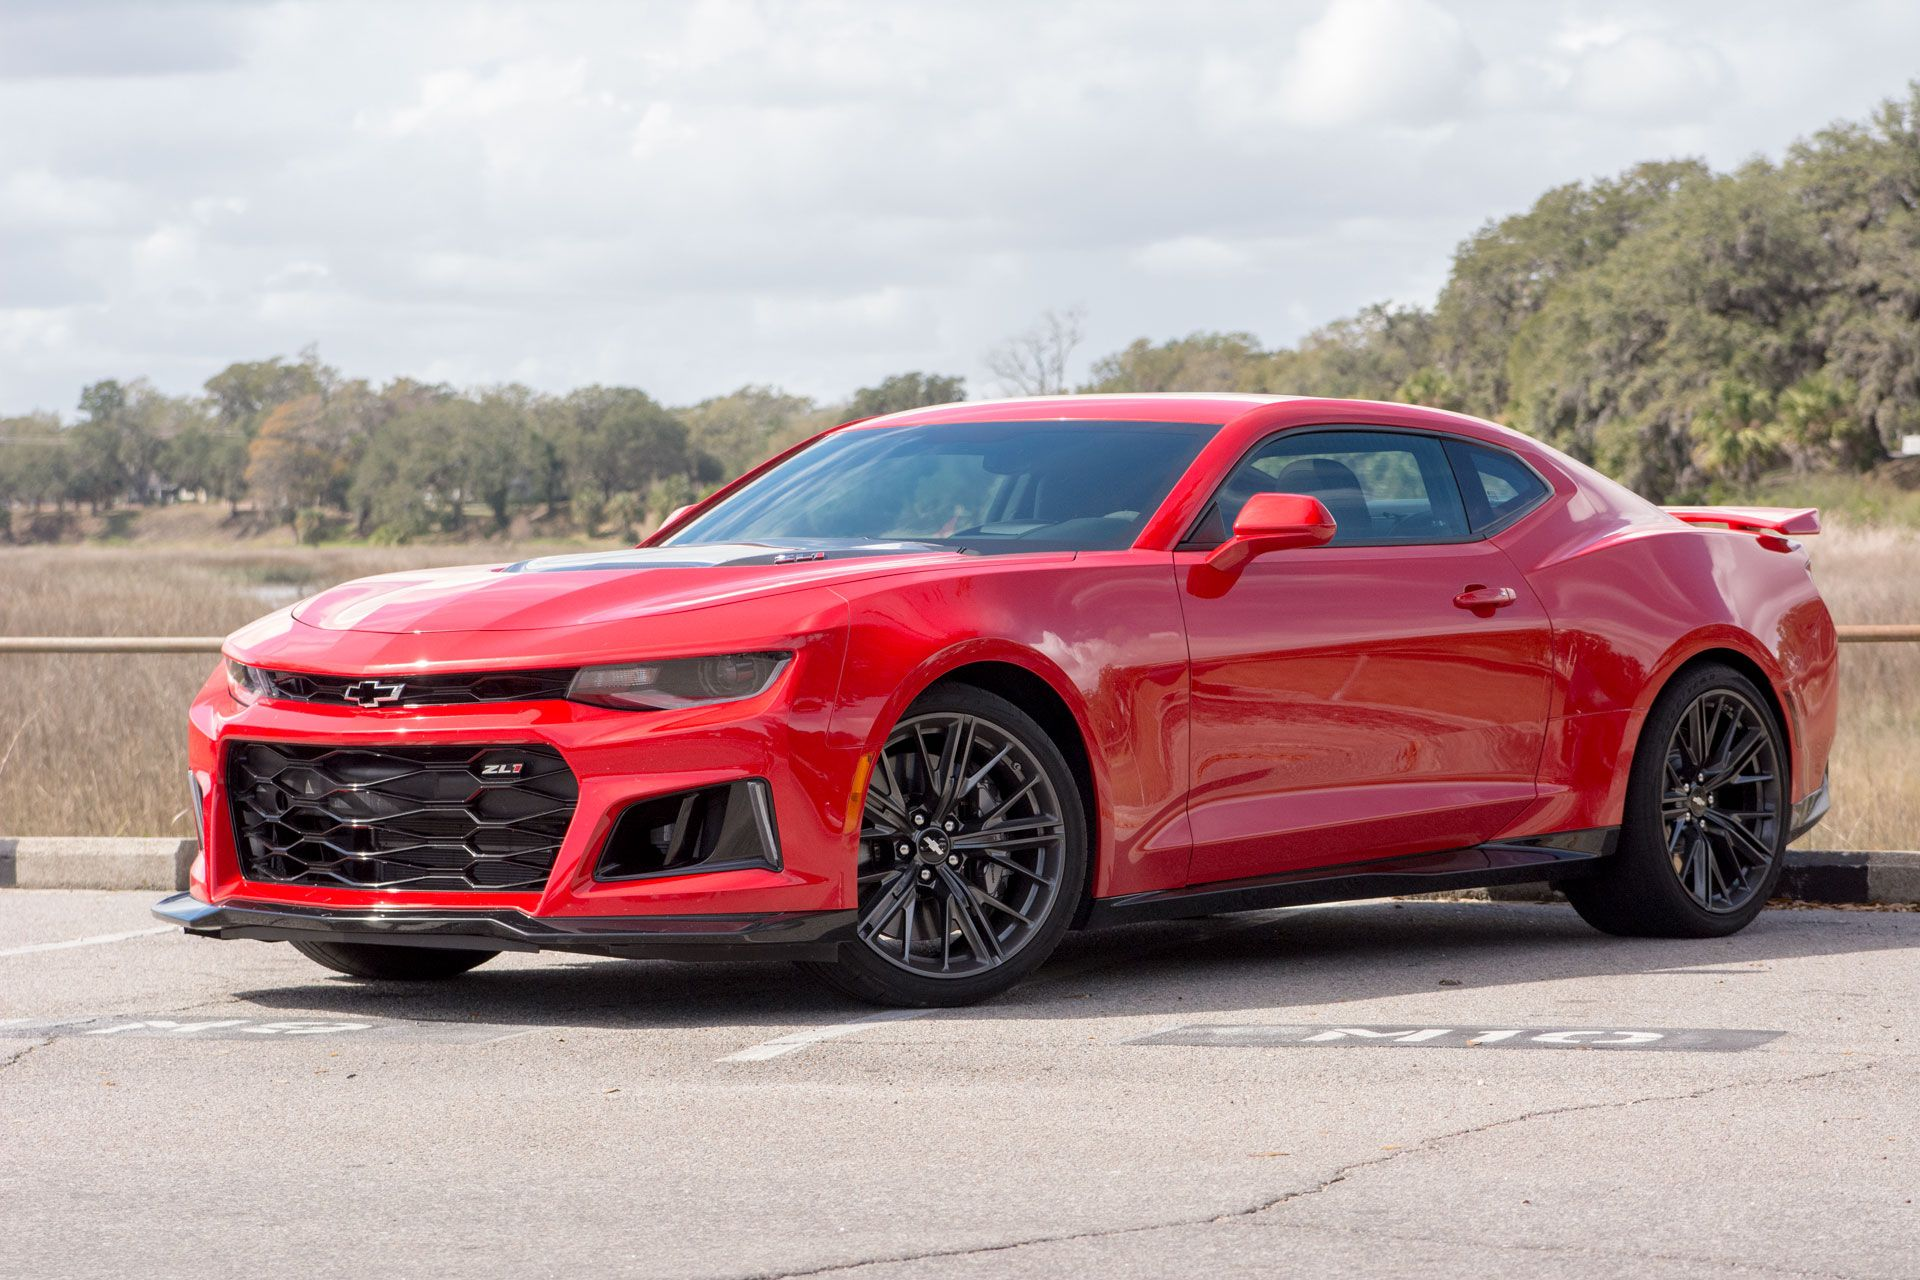 All new 2017 camaro zl1 at chevrolet cadillac of santa fe www chevroletofsantafe com 2017 camaro zl1 pinterest camaro zl1 car chevrolet and